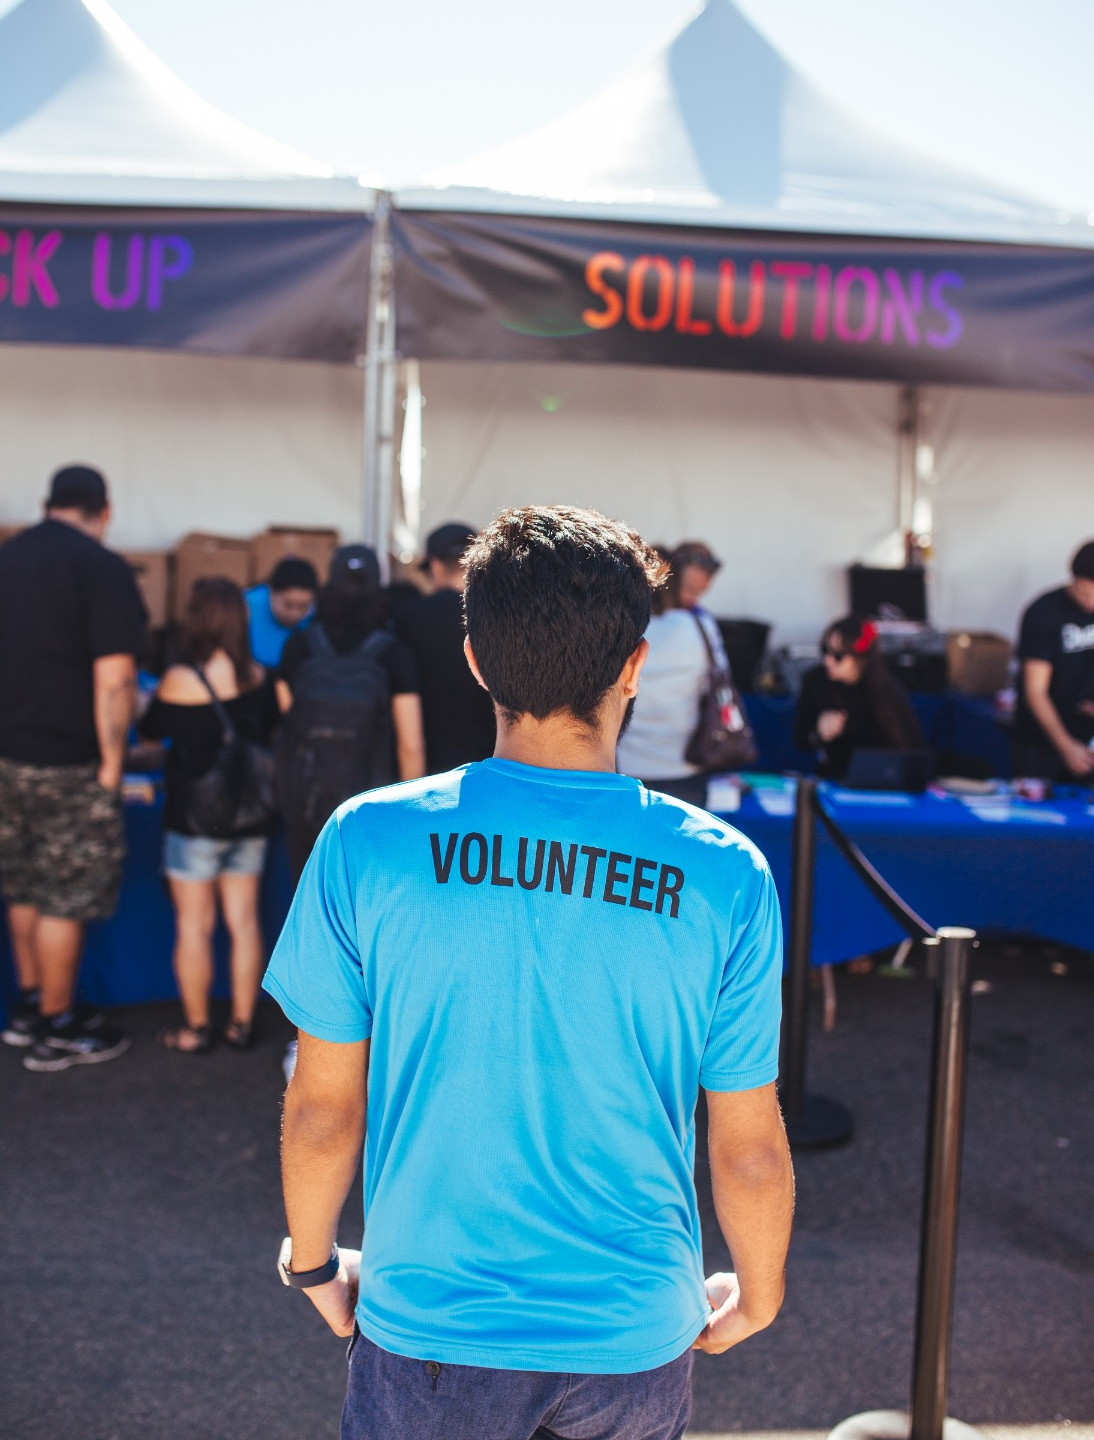 A special thank you goes to all of our extraordinary volunteers!